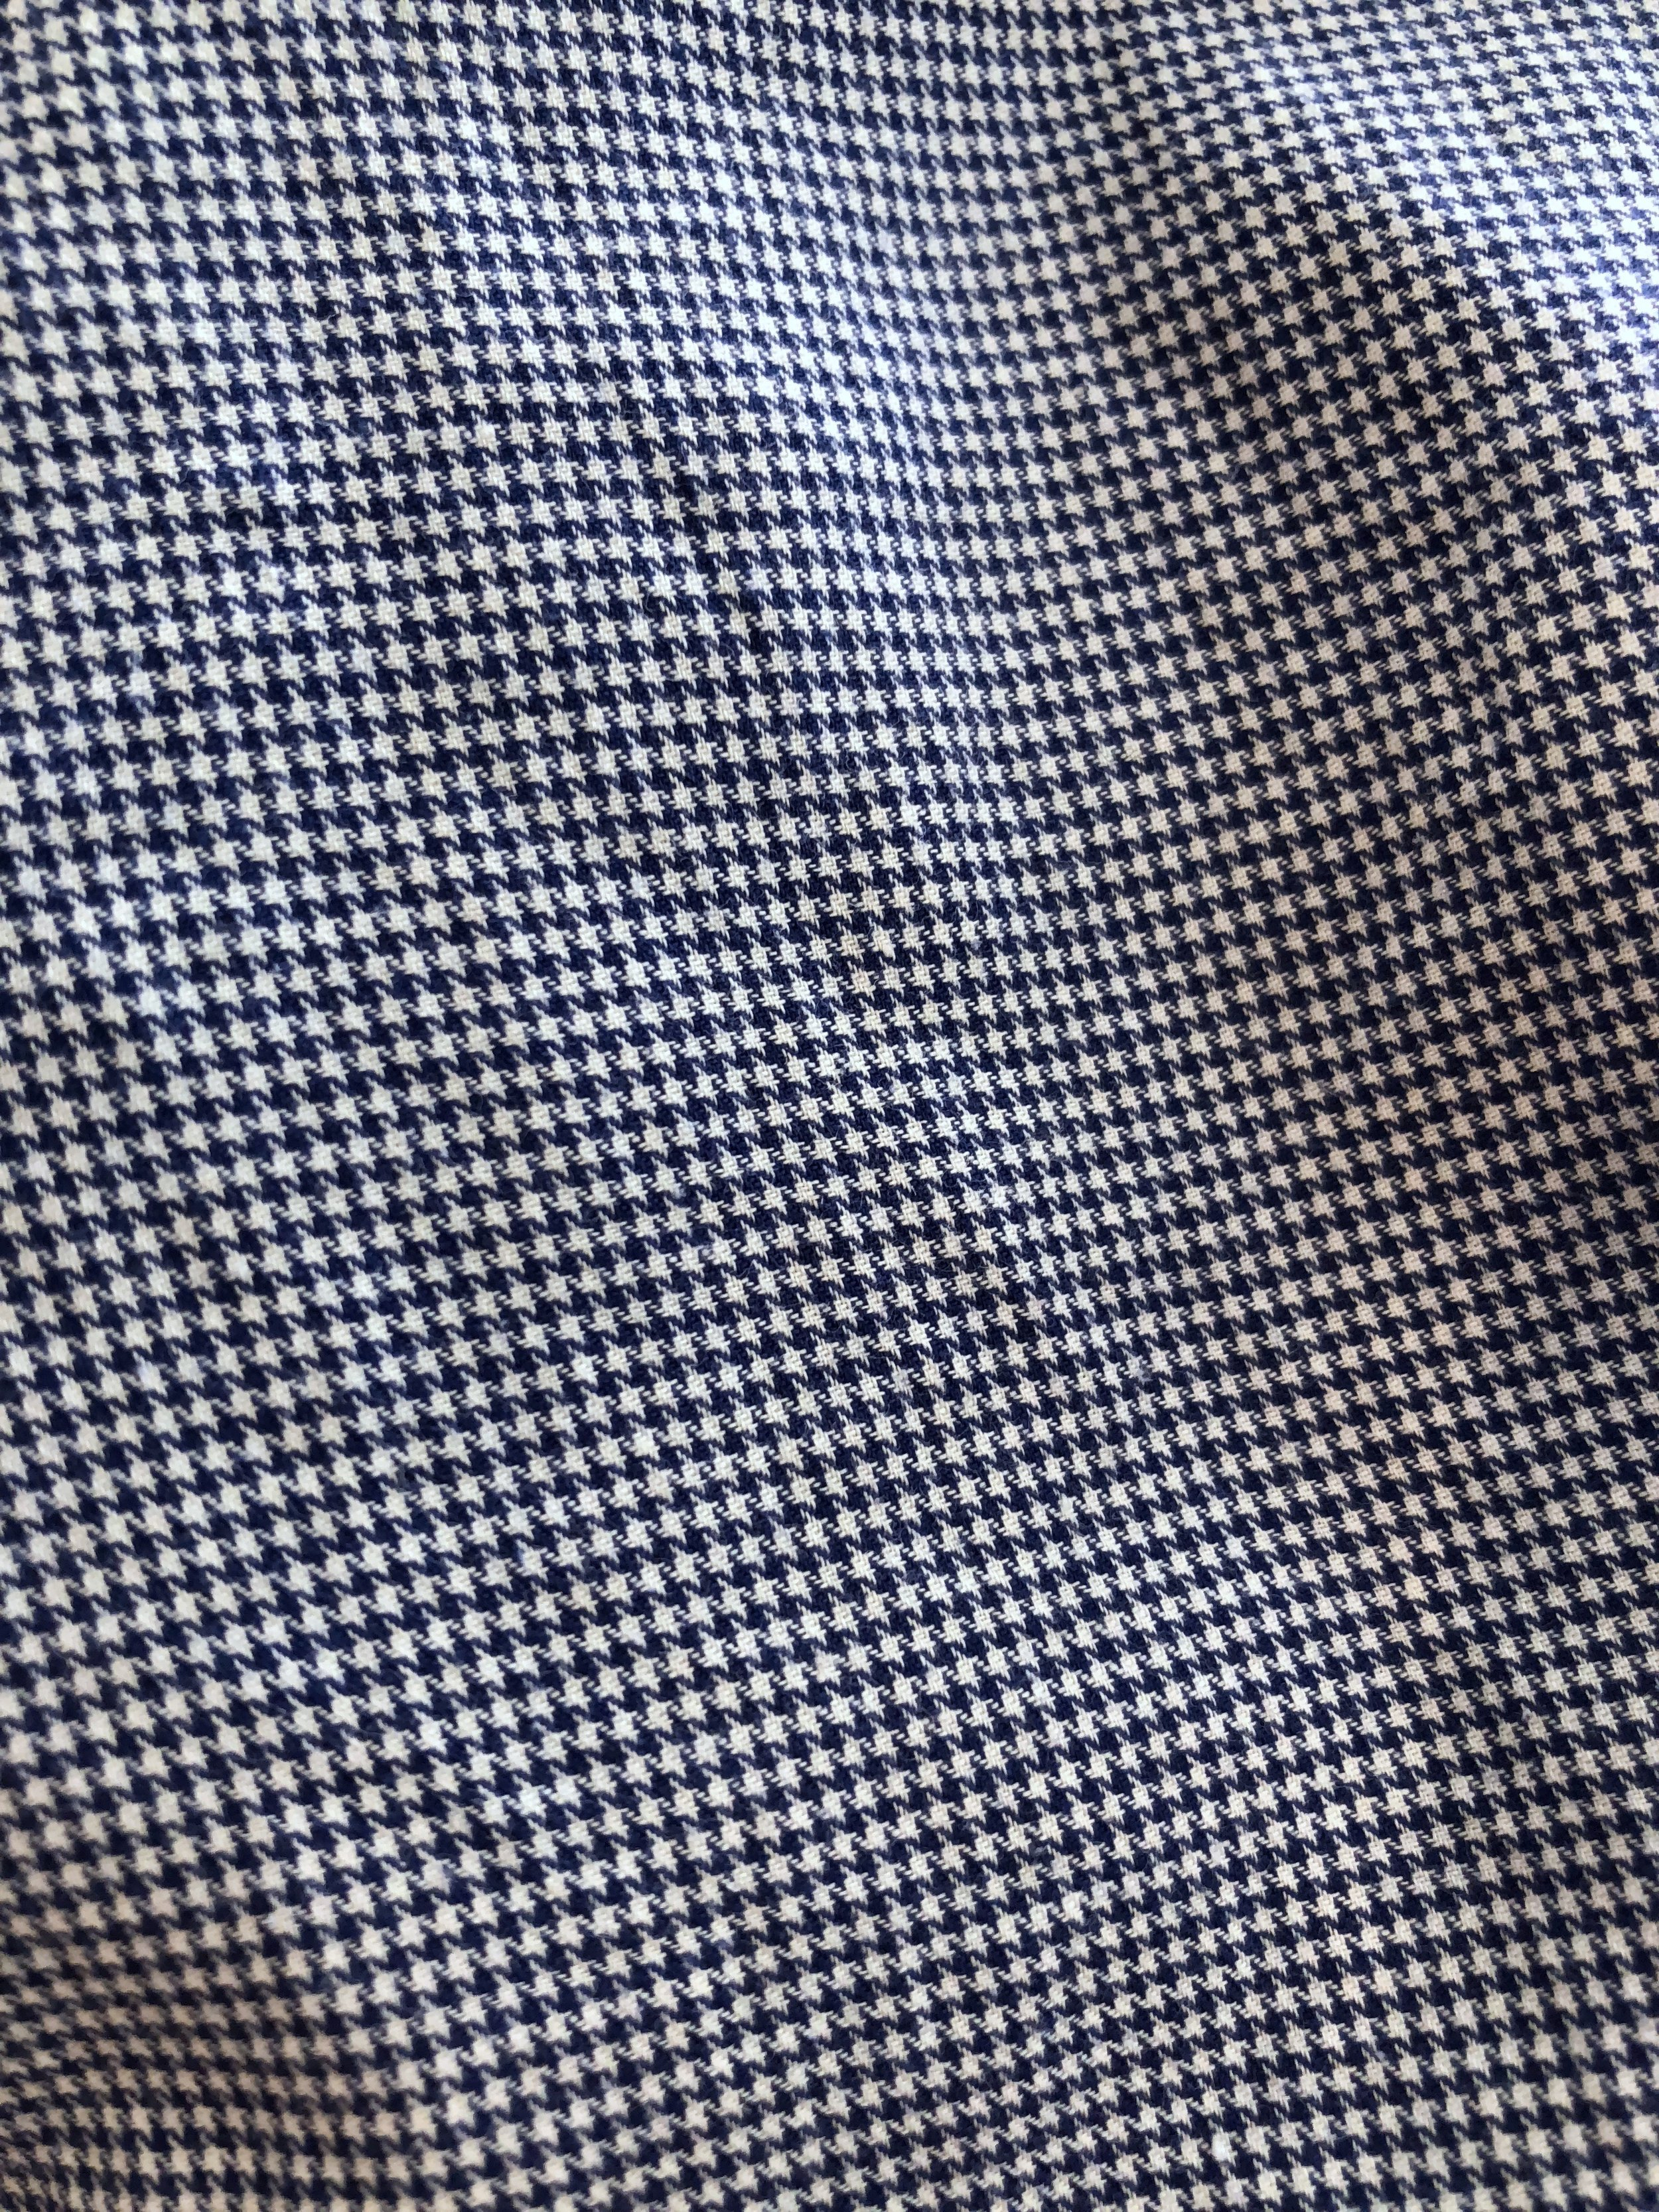 Close-up of the navy houndstooth cashmere blend fabric